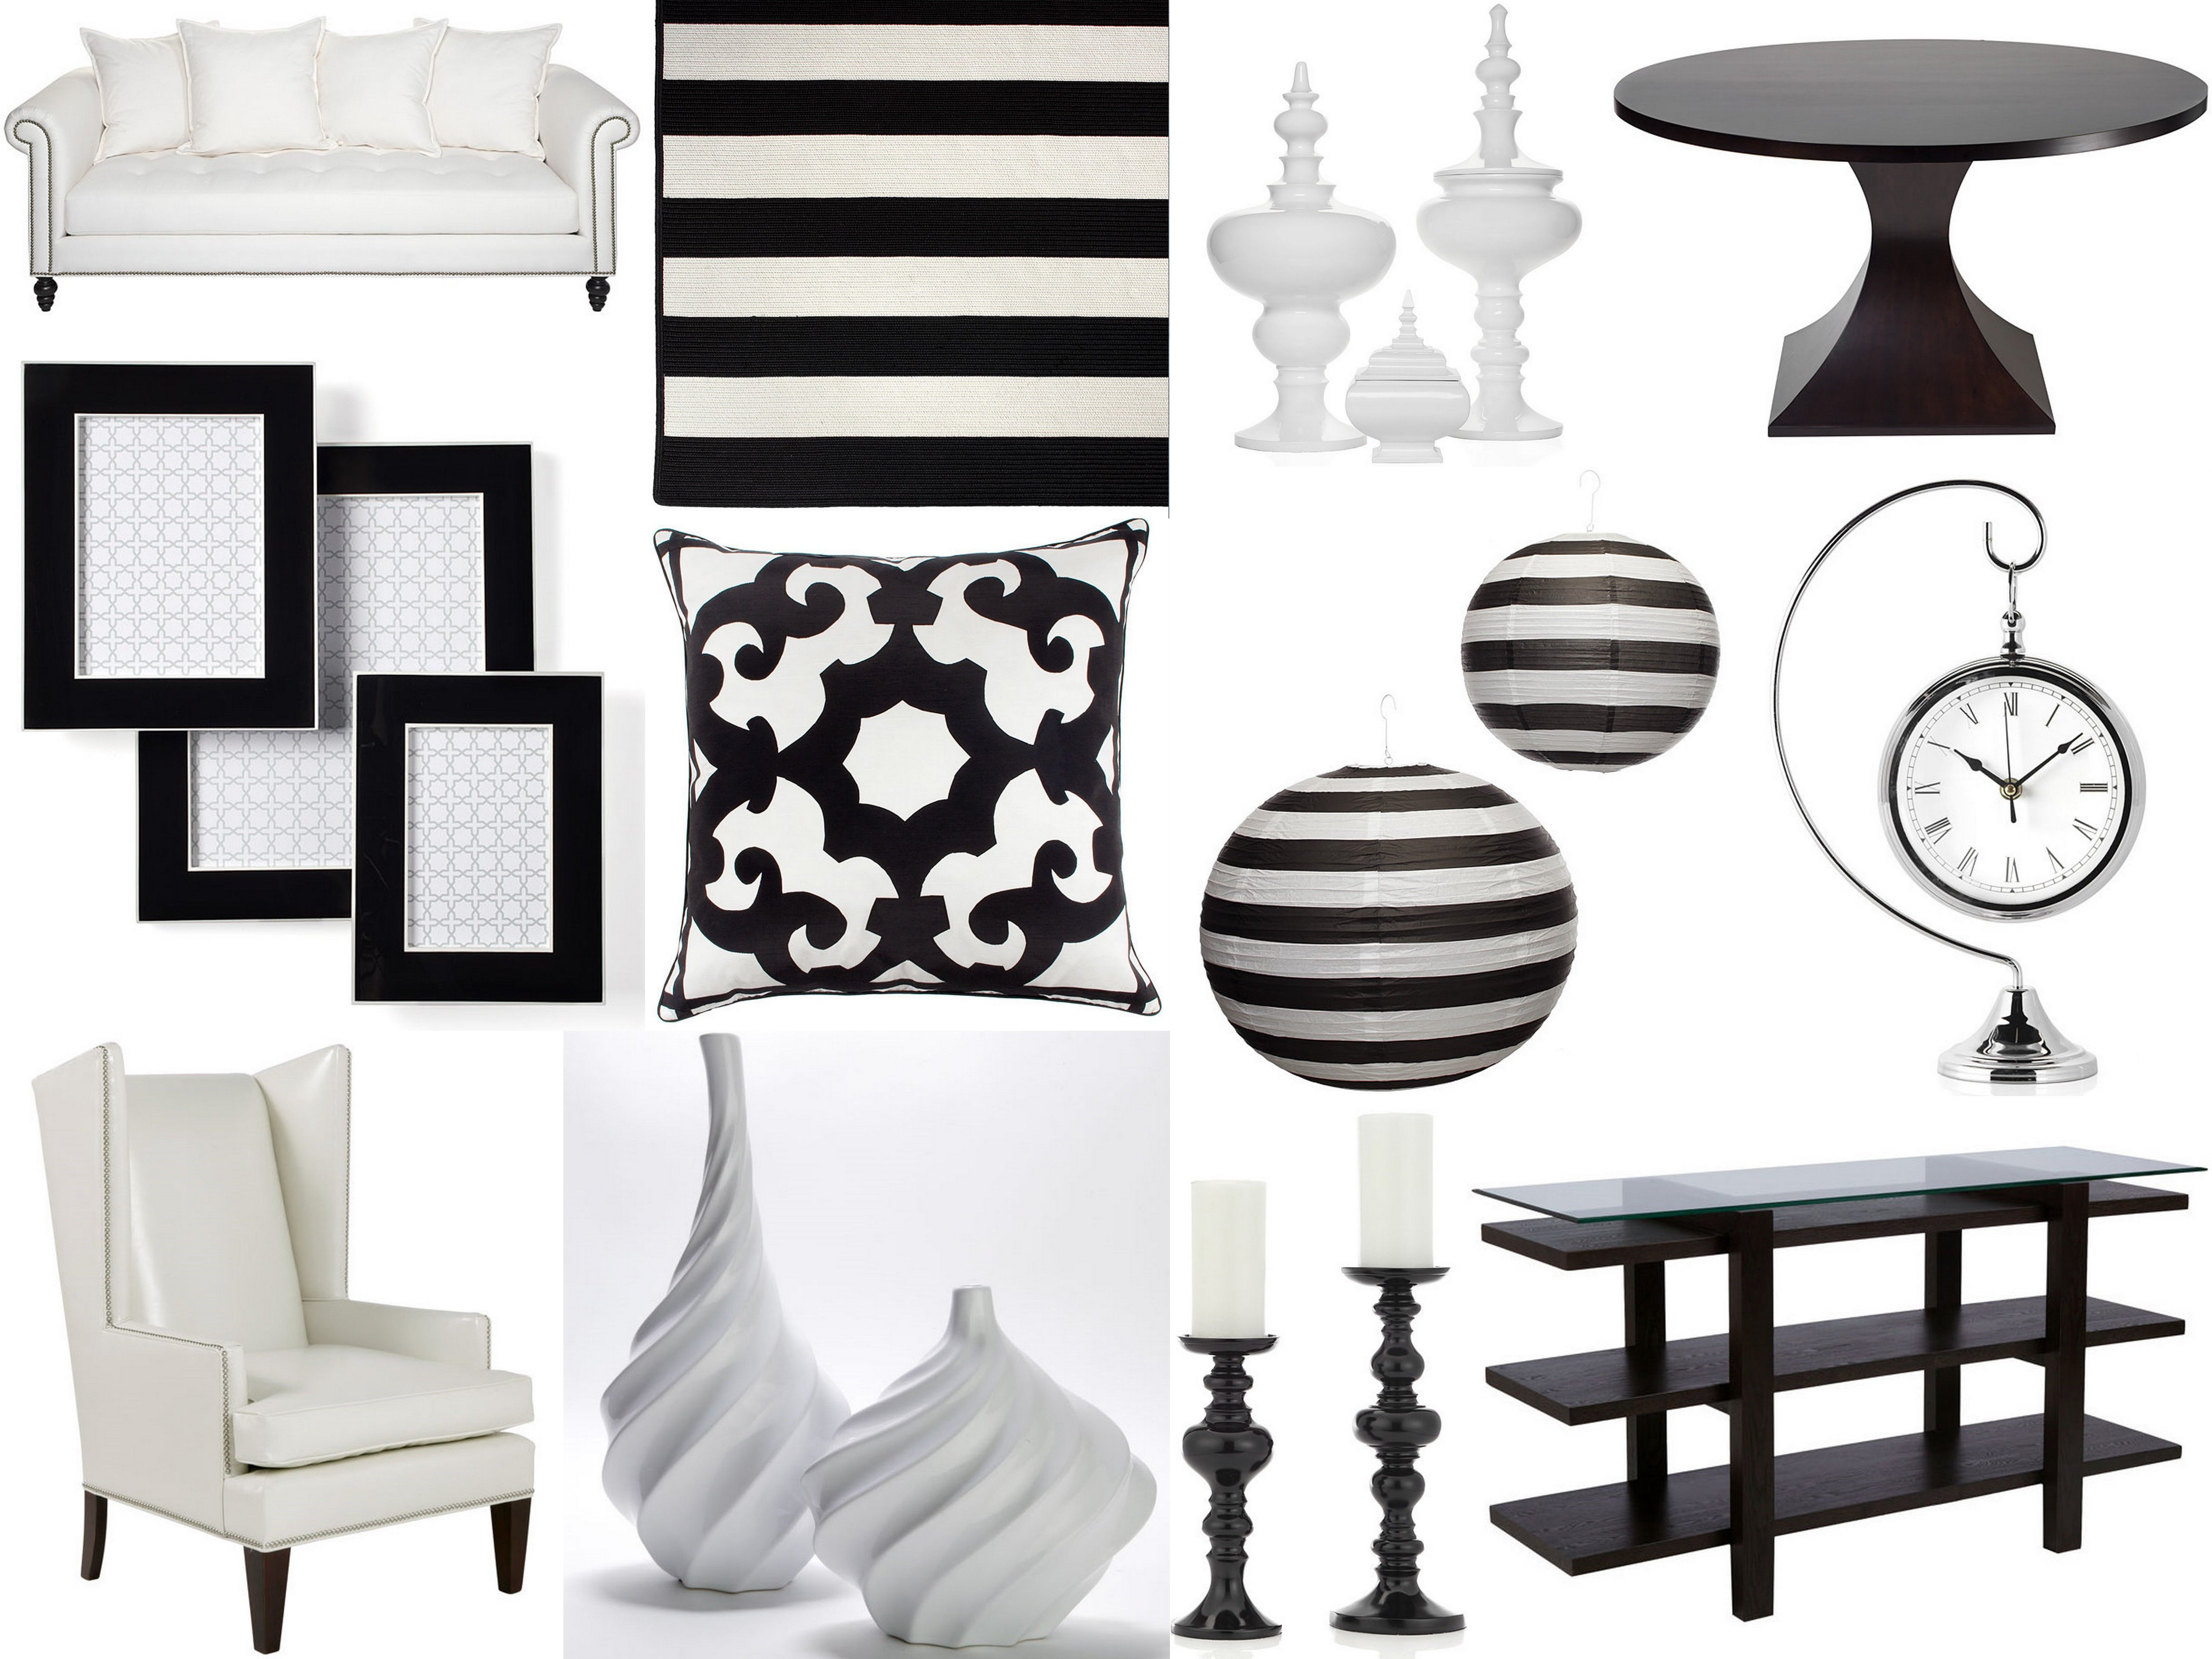 Inspired By Z Gallerie For Wedding Decor Inspired By This Home Decor Home Black And White Decor